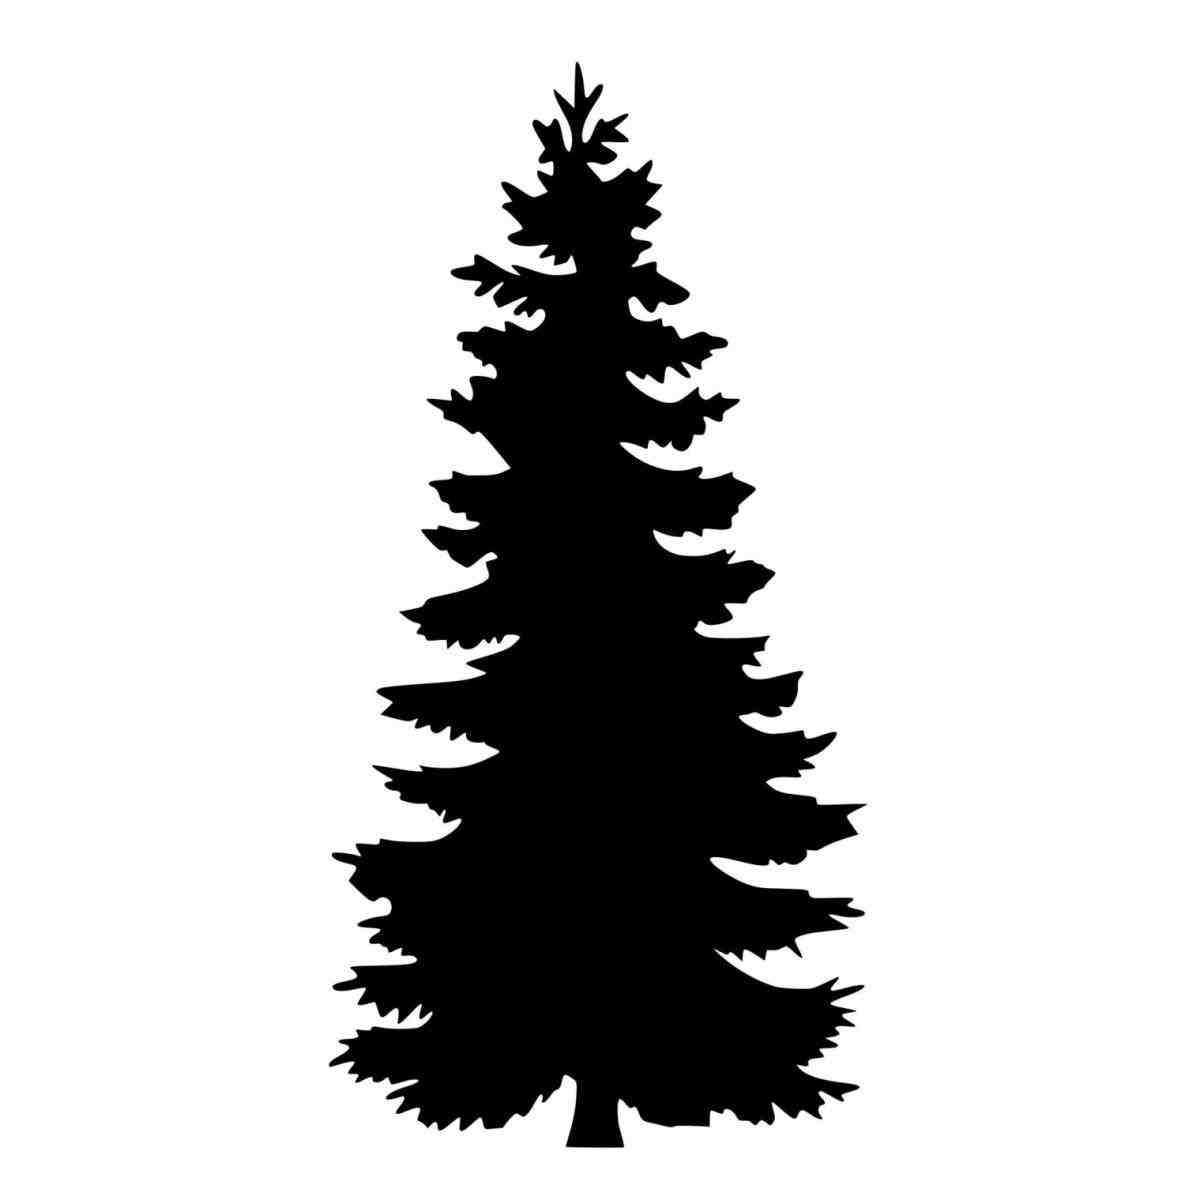 Evergreen Tree Silhouette.